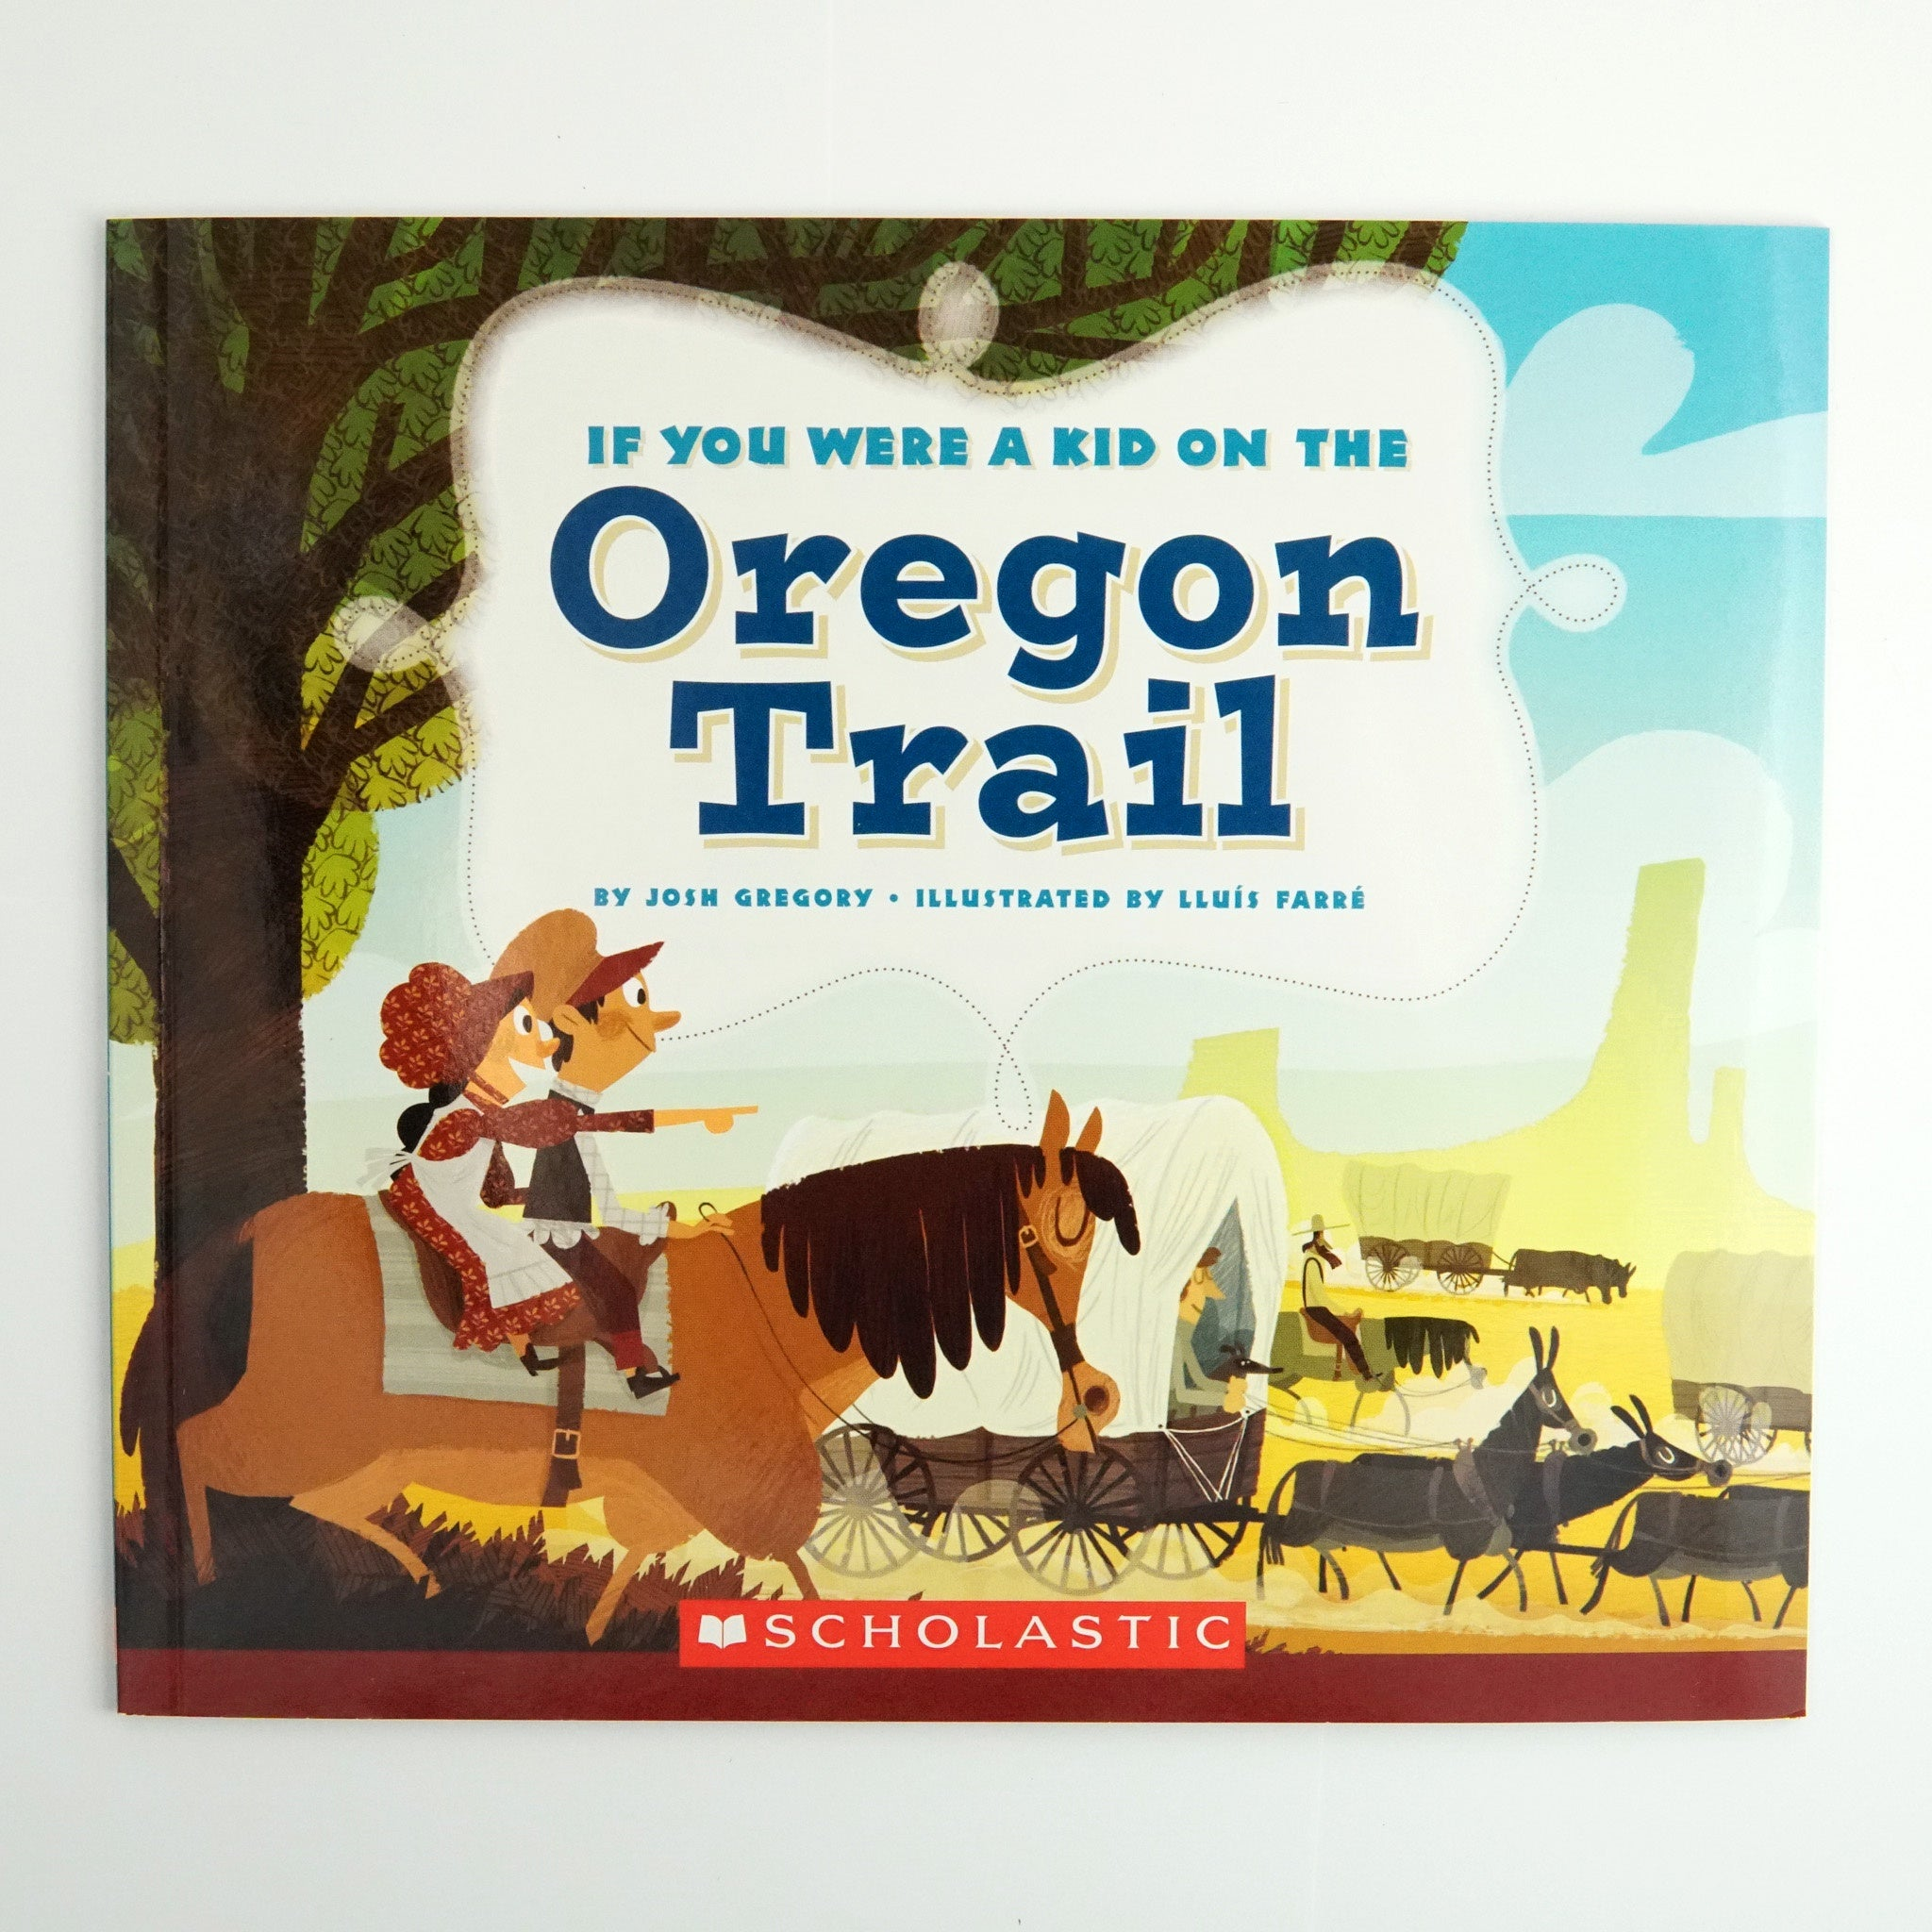 BK 18 IF YOU WERE A KID ON THE OREGON TRAIL BY JOSH GREGORY #10996